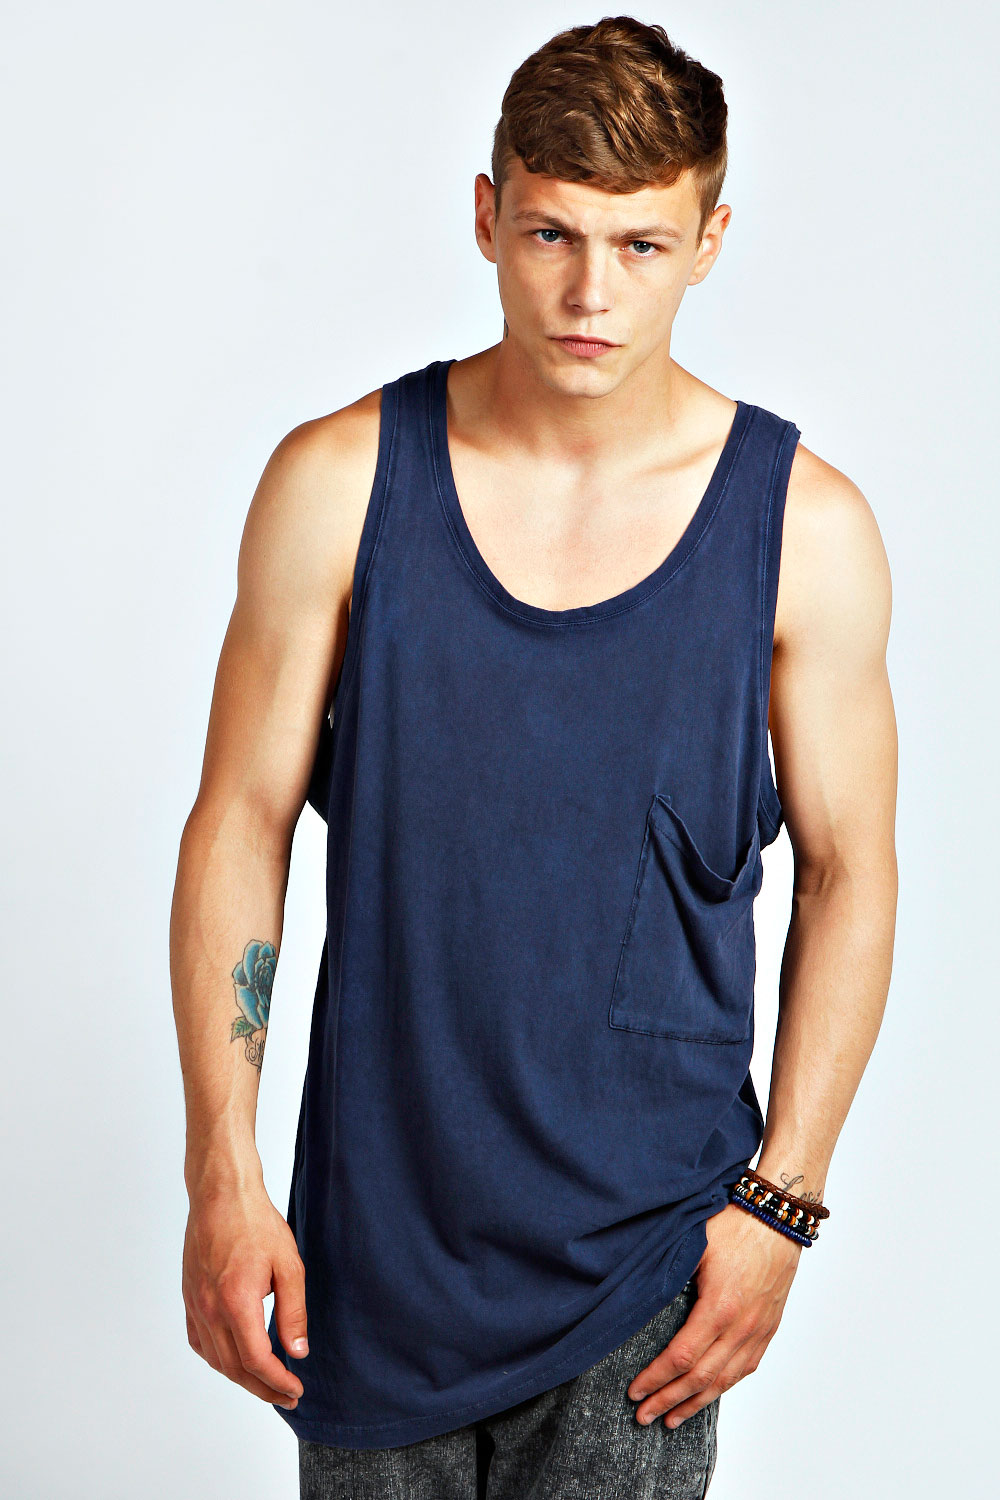 Update your basics this season with men's vests in staple shades and printed styles - perfect for the gym or layering under jumpers. Refresh your essentials with blue, white and red vests, easily paired with comfy shorts and sunglasses for added appeal. Think florals, stripes and colourblock vests to style your casual look, or simple shades of black and navy to wear under an open collar shirt.